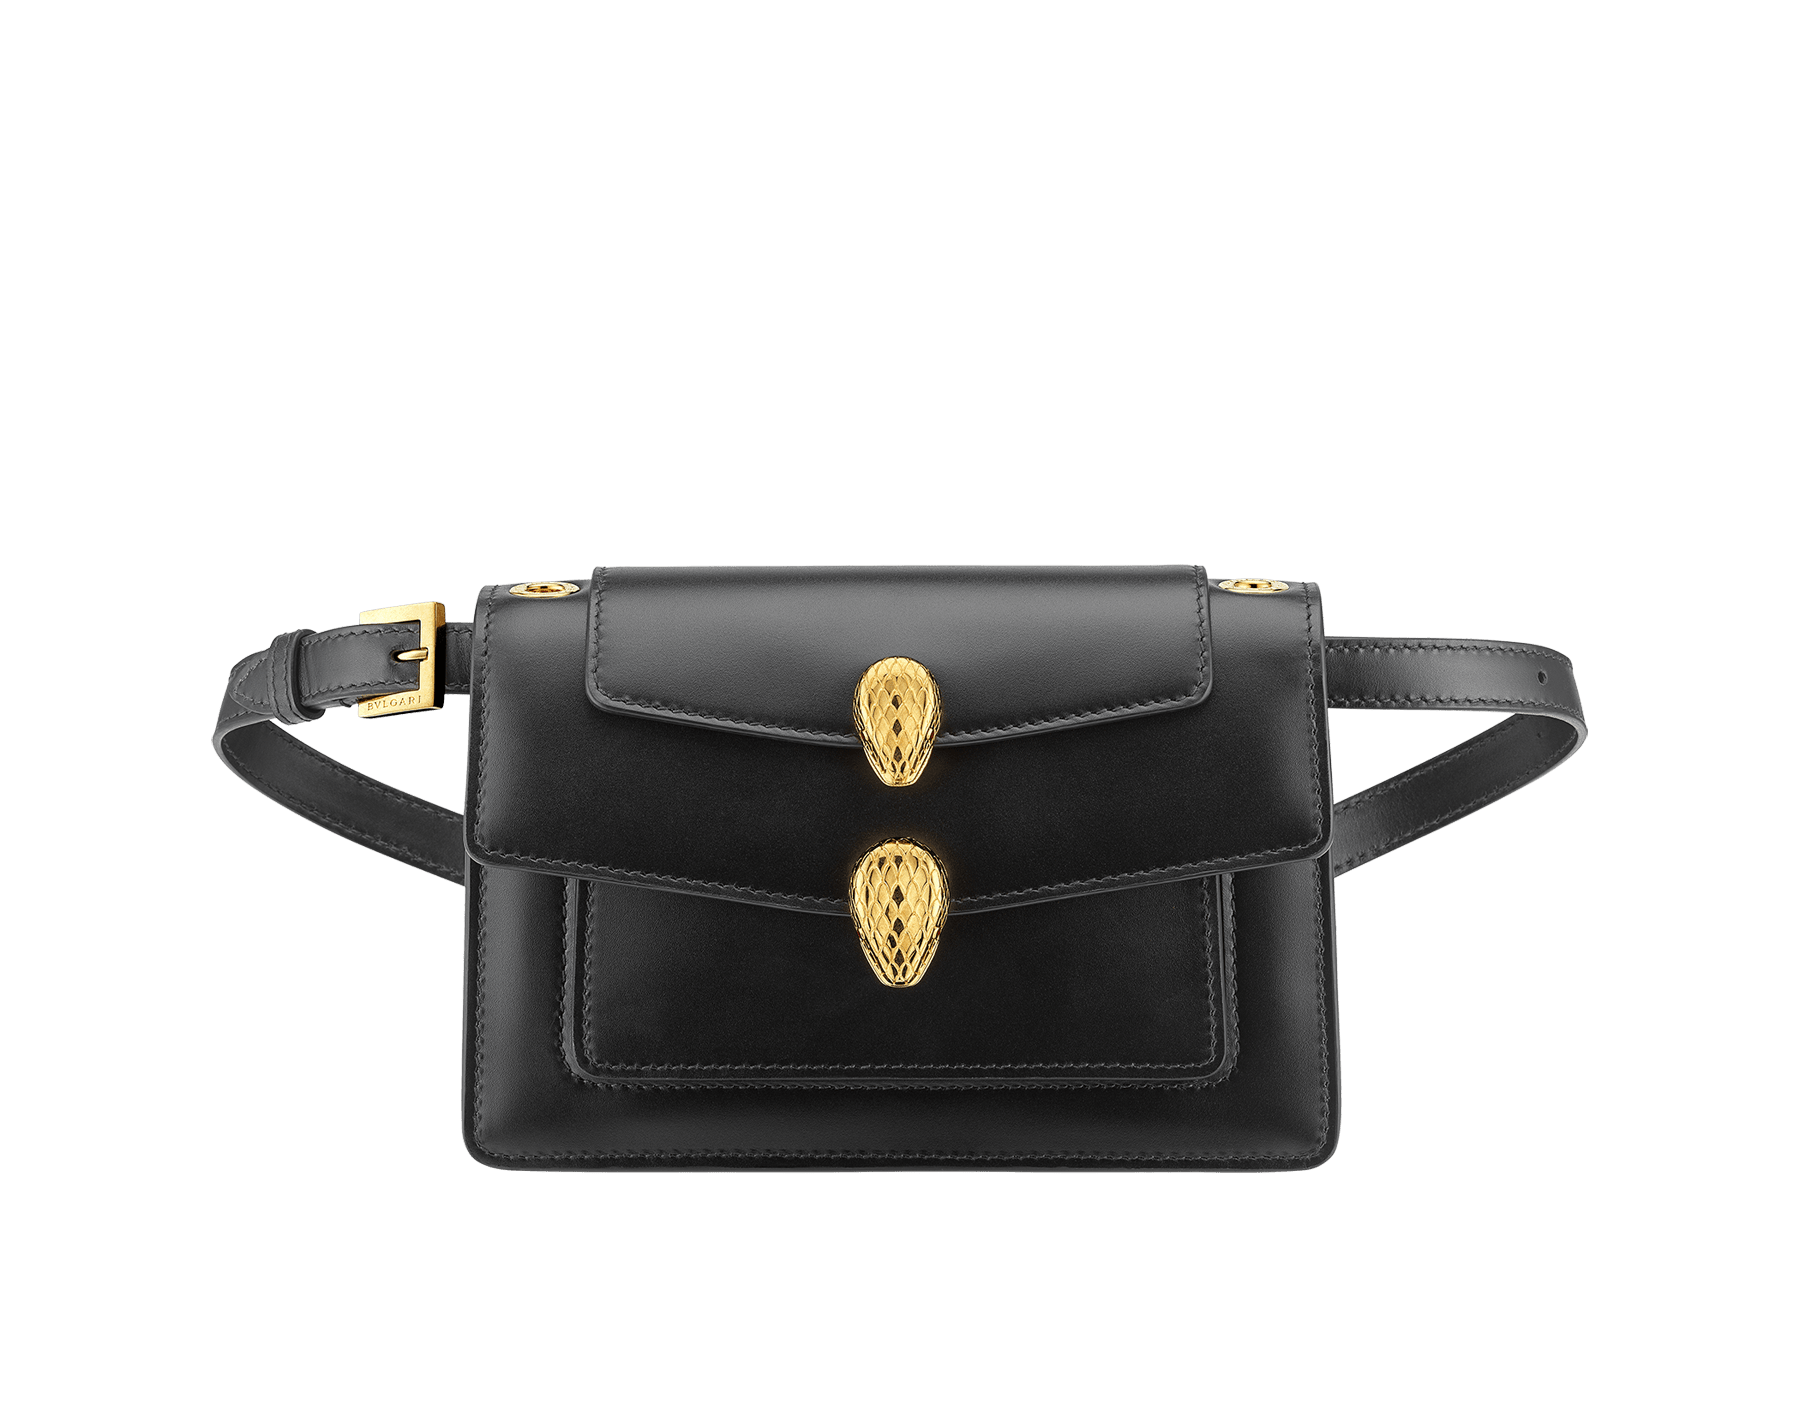 """Alexander Wang x Bvlgari"" belt bag in smooth peach calf leather. New double Serpenti head closure in antique gold plated brass with tempting red enamel eyes. Limited edition. SFW-001-1029S image 4"